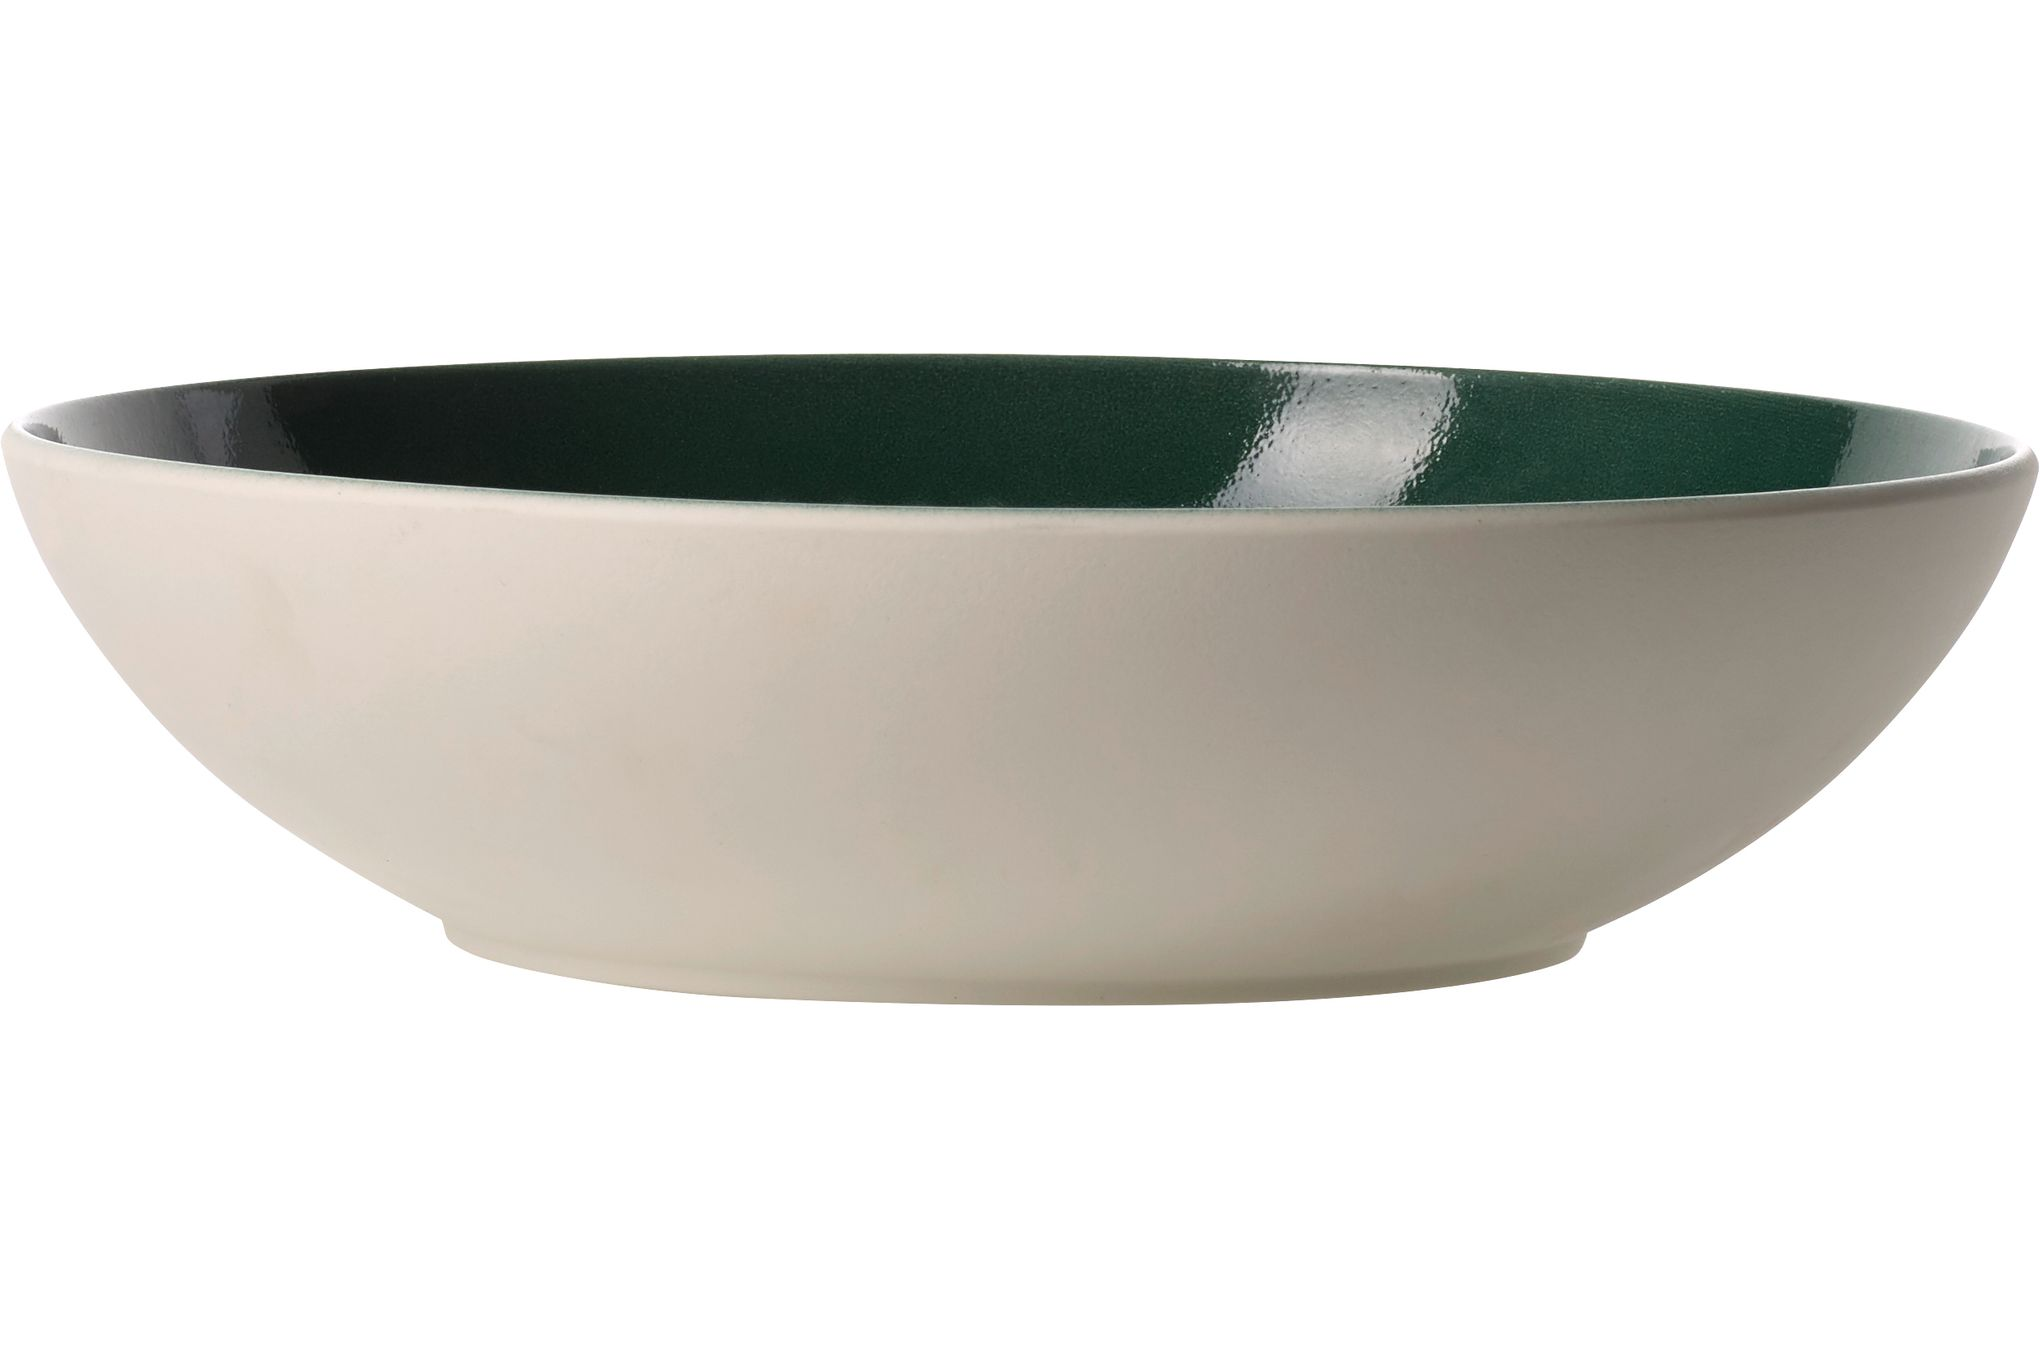 Villeroy & Boch It's my match Serving Bowl Blossom - Green 26 x 6.5cm, 2l thumb 1